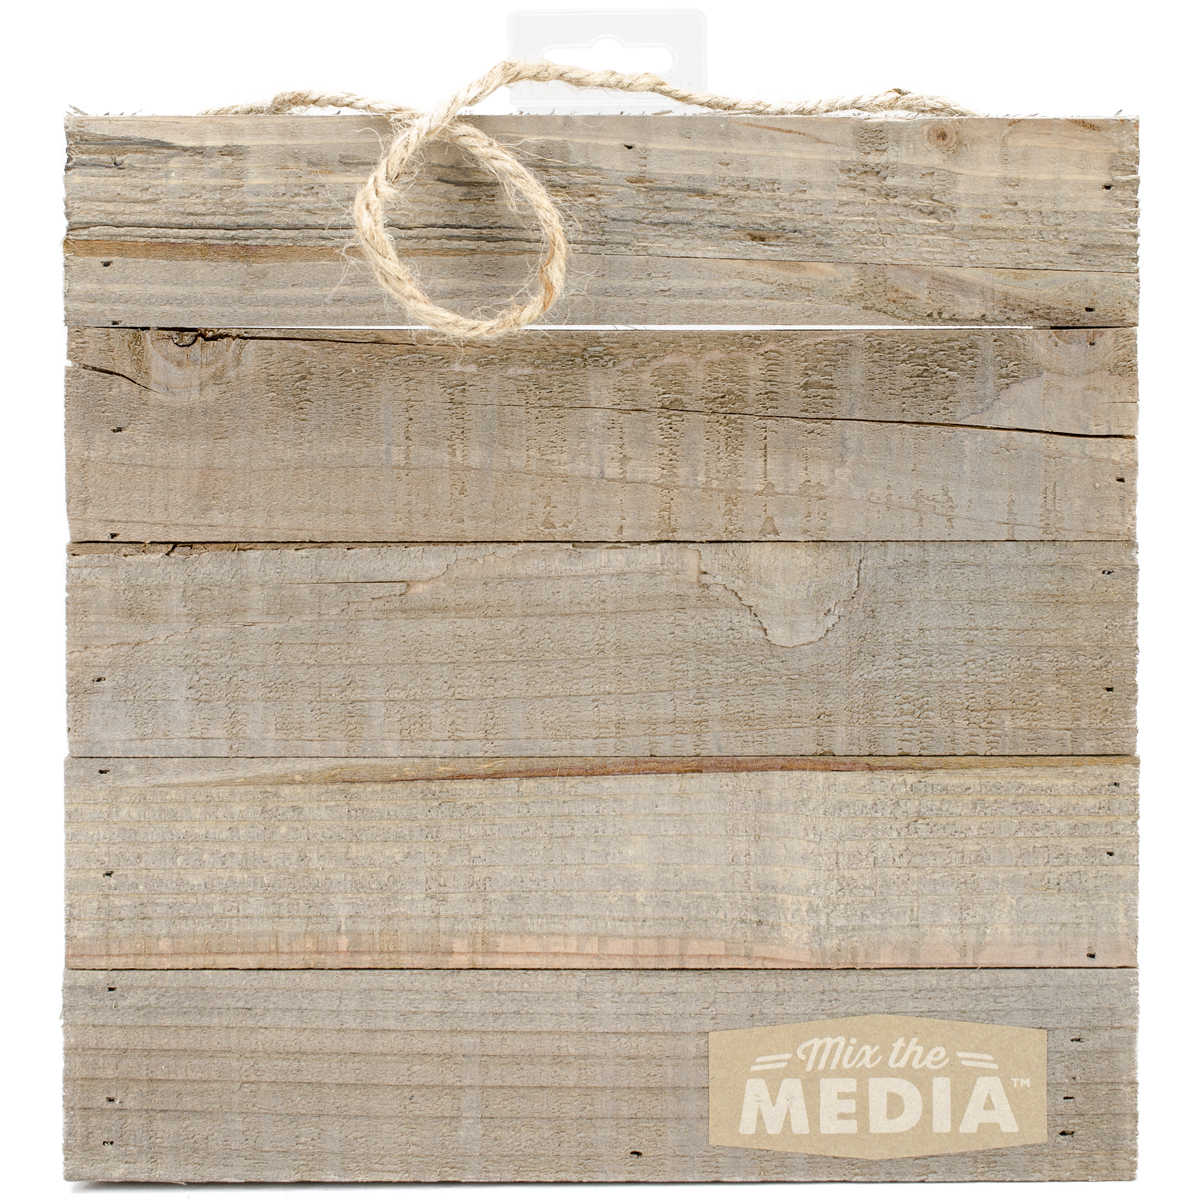 Jillibean Soup Mix The Media Wooden Plank 10'X10' Dark